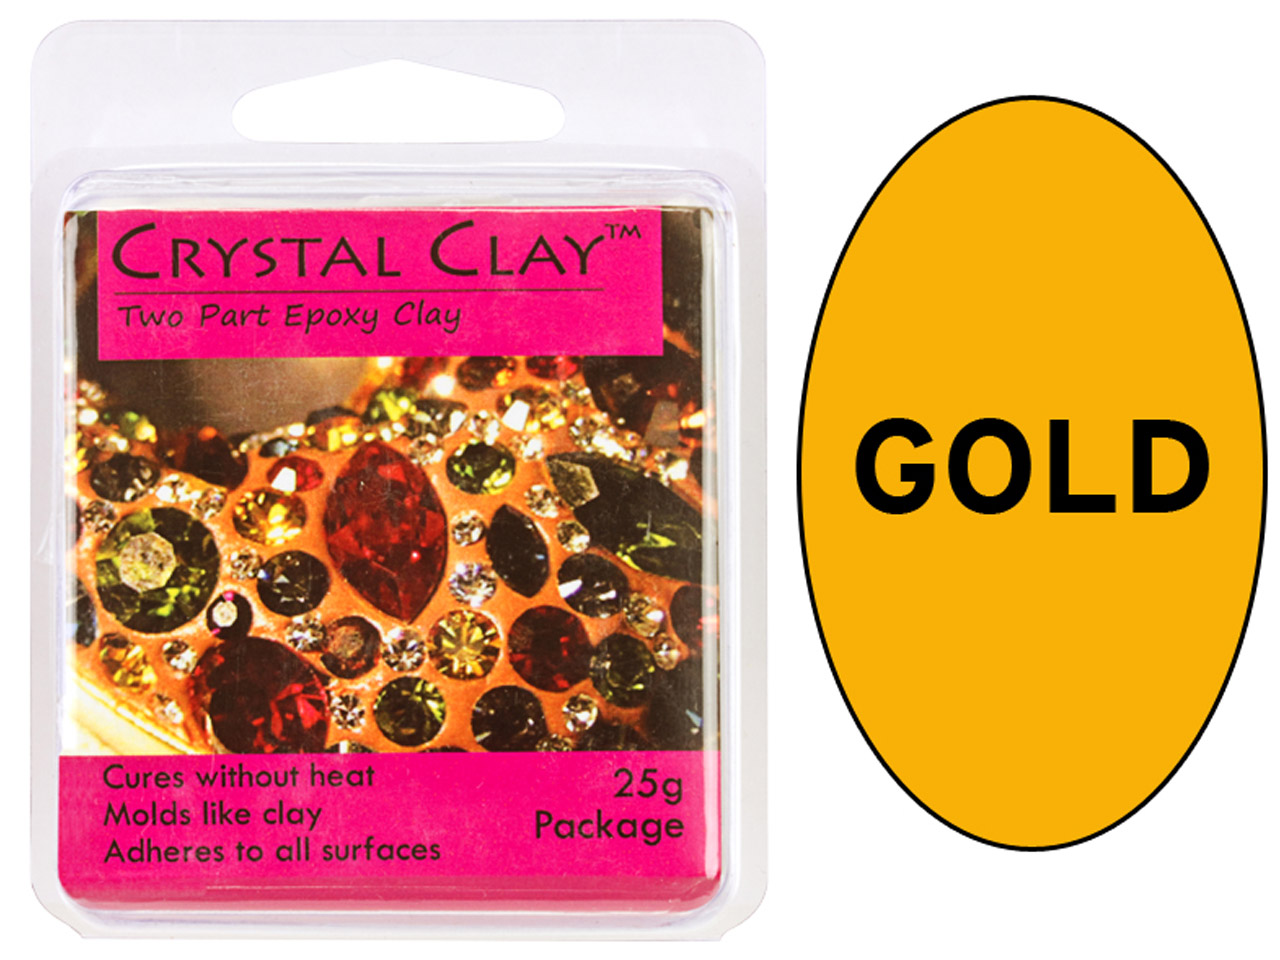 Crystal Clay, Gold, 25g Two Part   Epoxy Clay